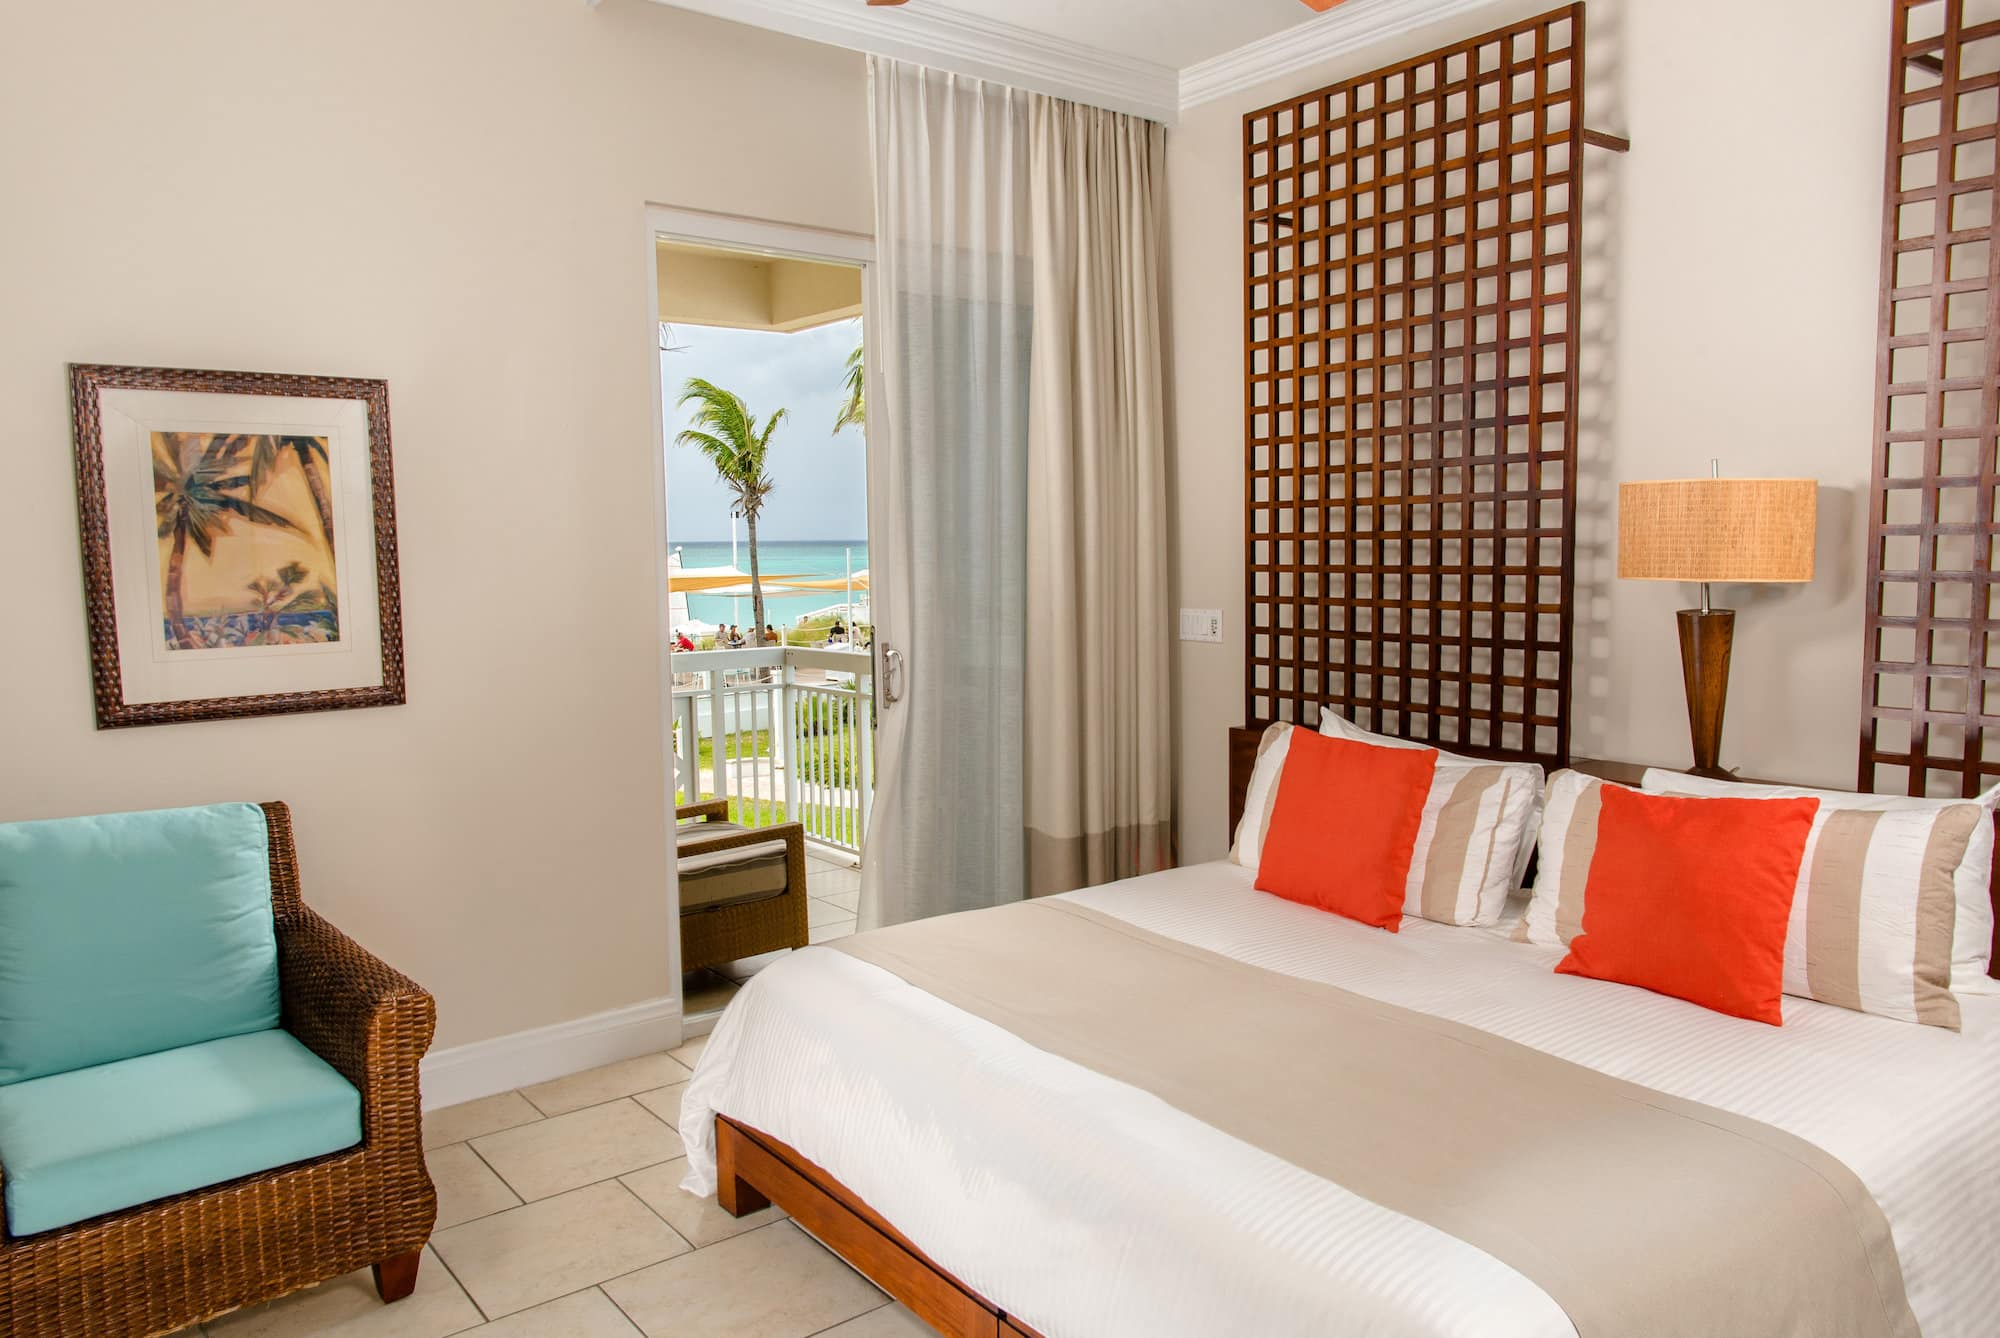 Alexandra resort turks caicos rooms